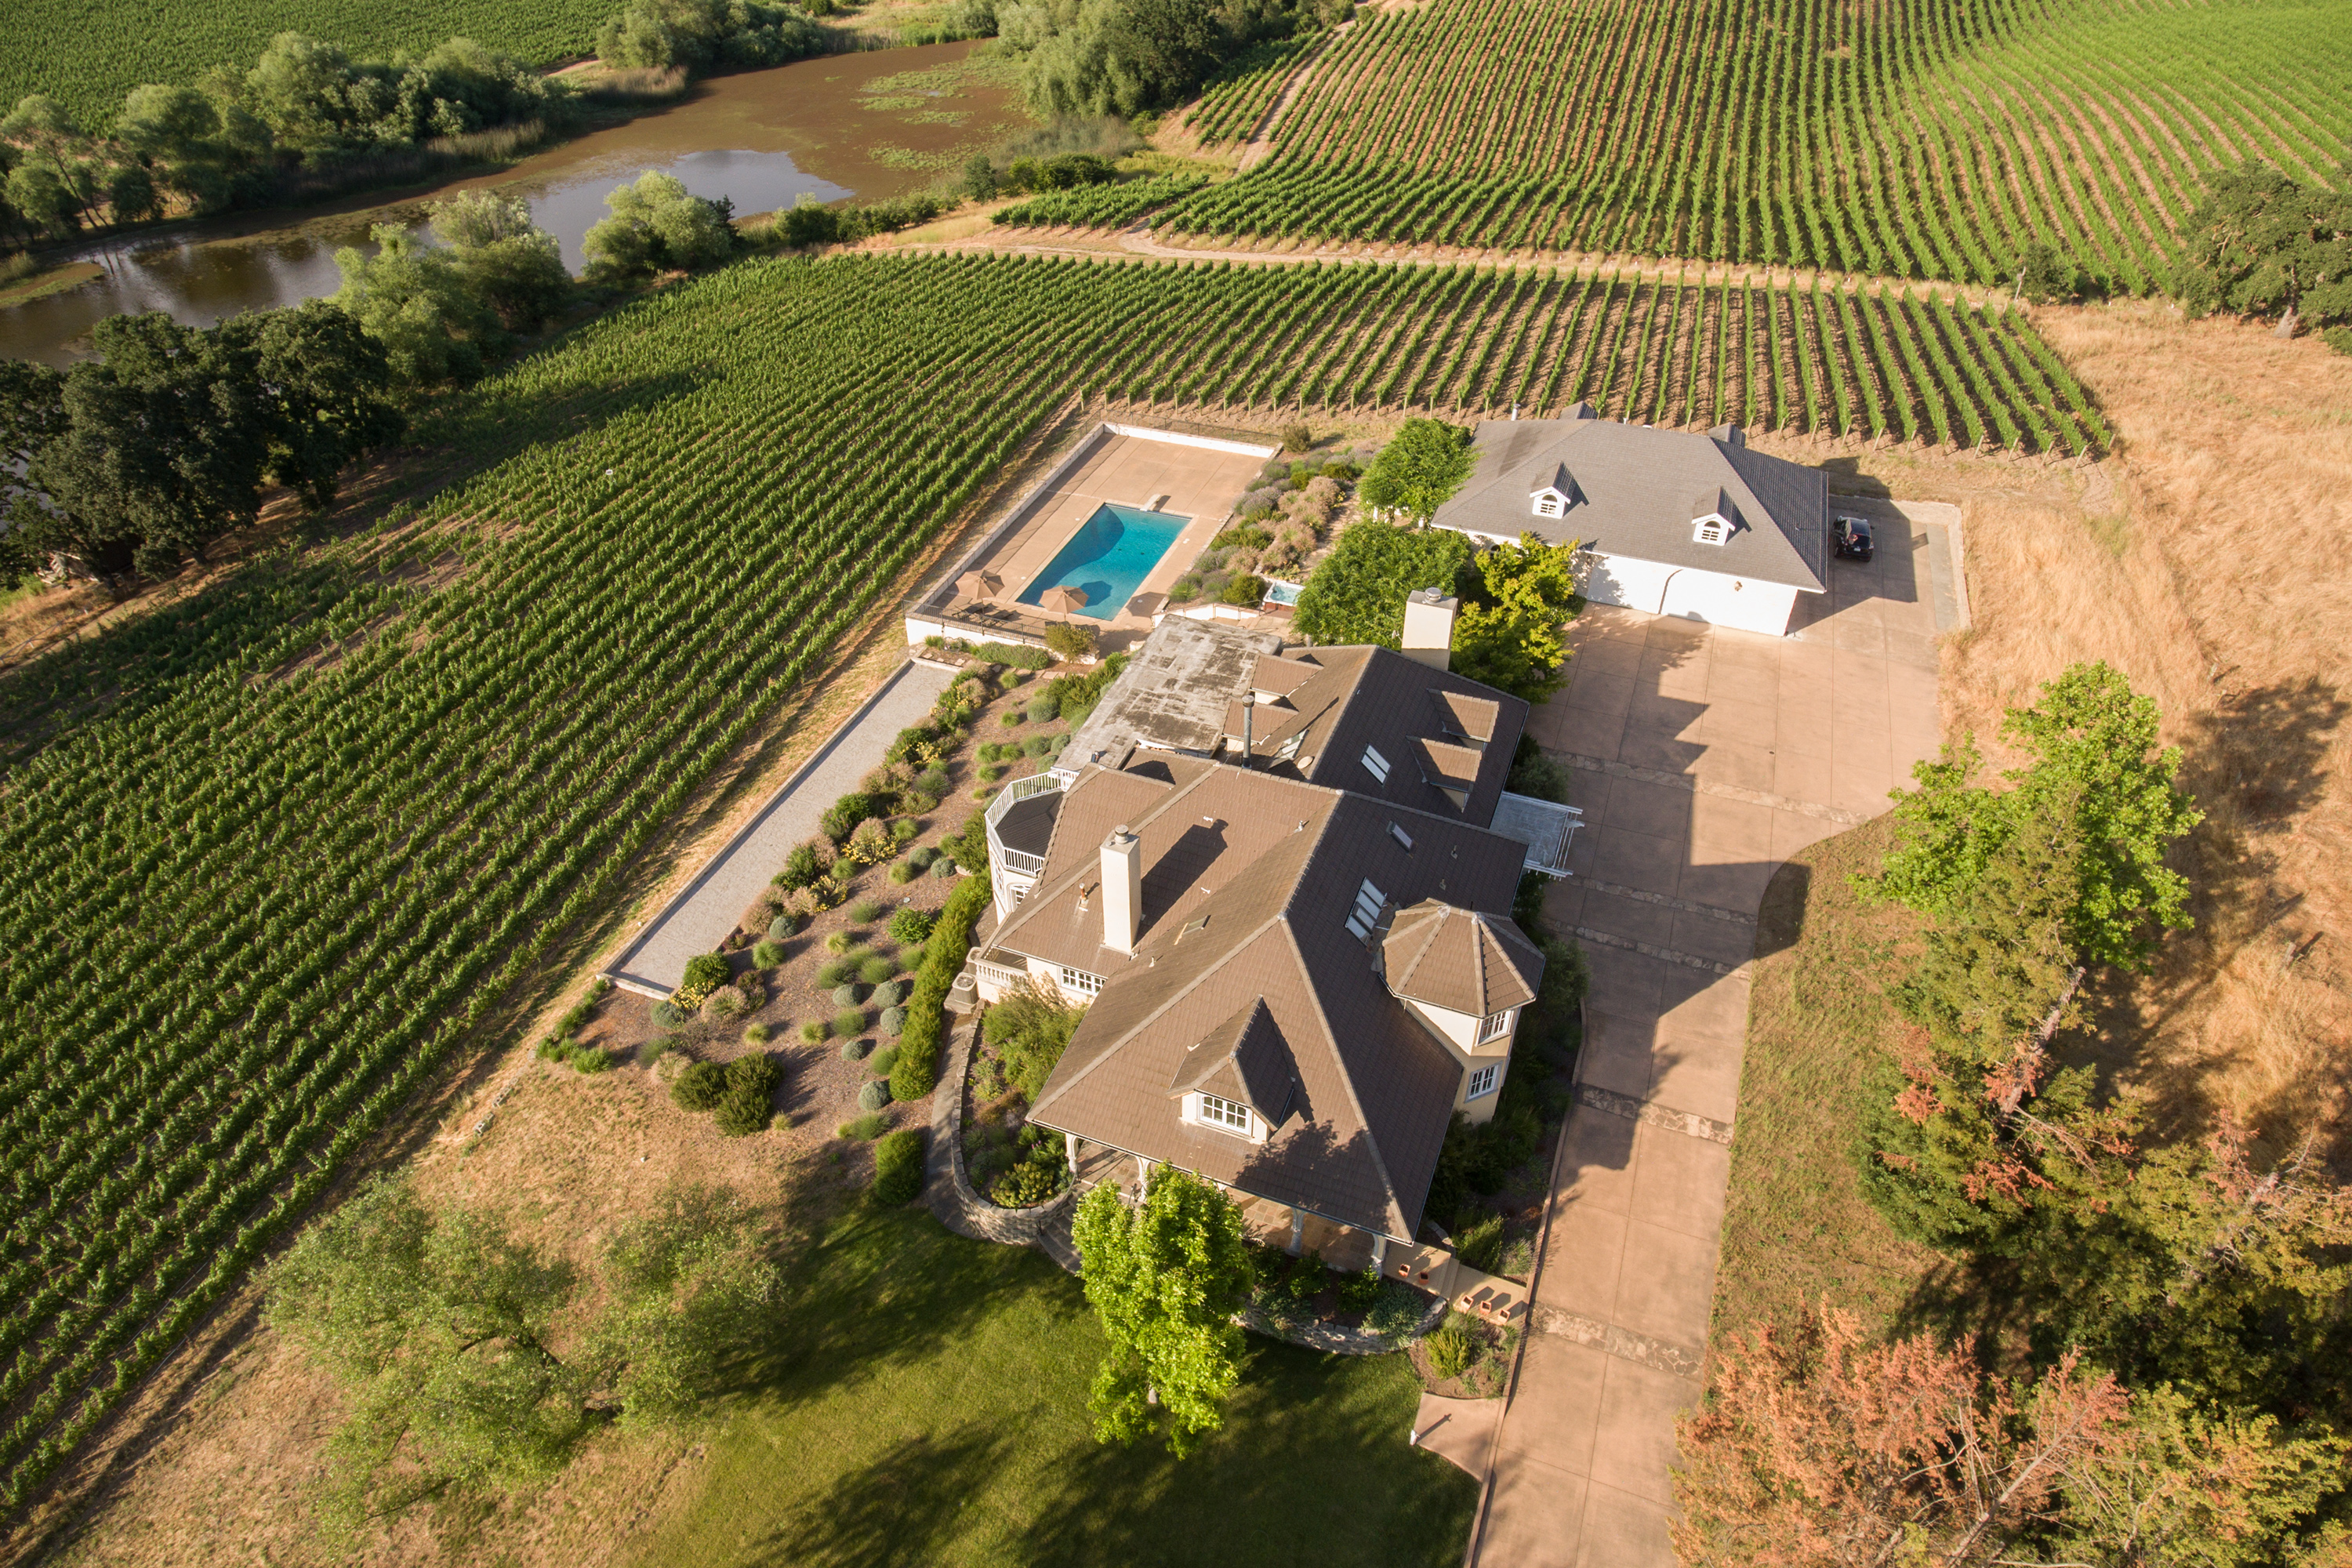 Tek Ailelik Ev için Satış at Napa Valley Vineyard Estate with Panoramic Views 1100 Hardman Avenue Napa, Kaliforniya, 94558 Amerika Birleşik Devletleri